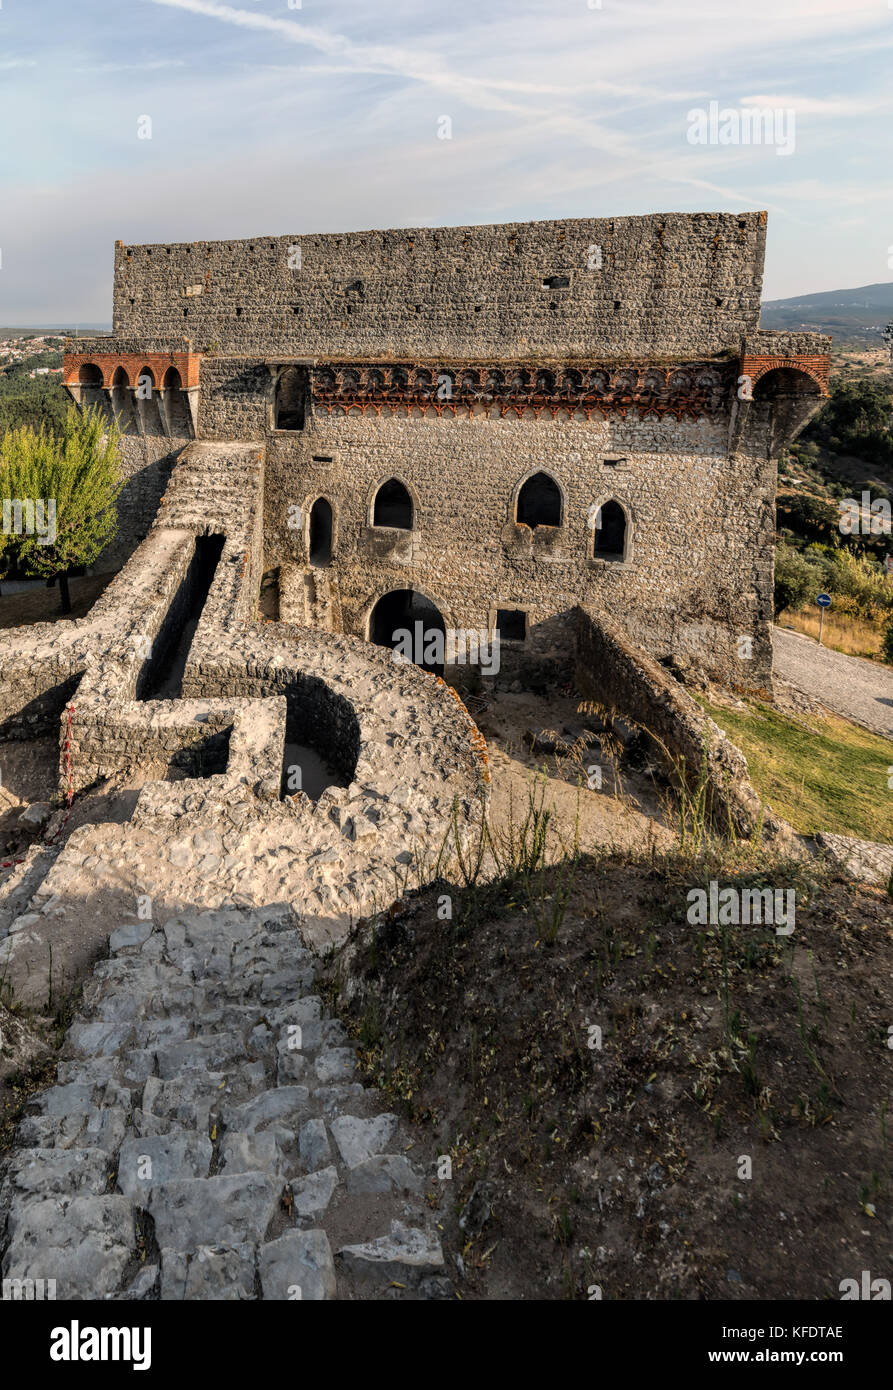 Medieval Castle of Ourem, served as watch-post for the Castle of Leiria during the Portuguese Reconquista in the - Stock Image